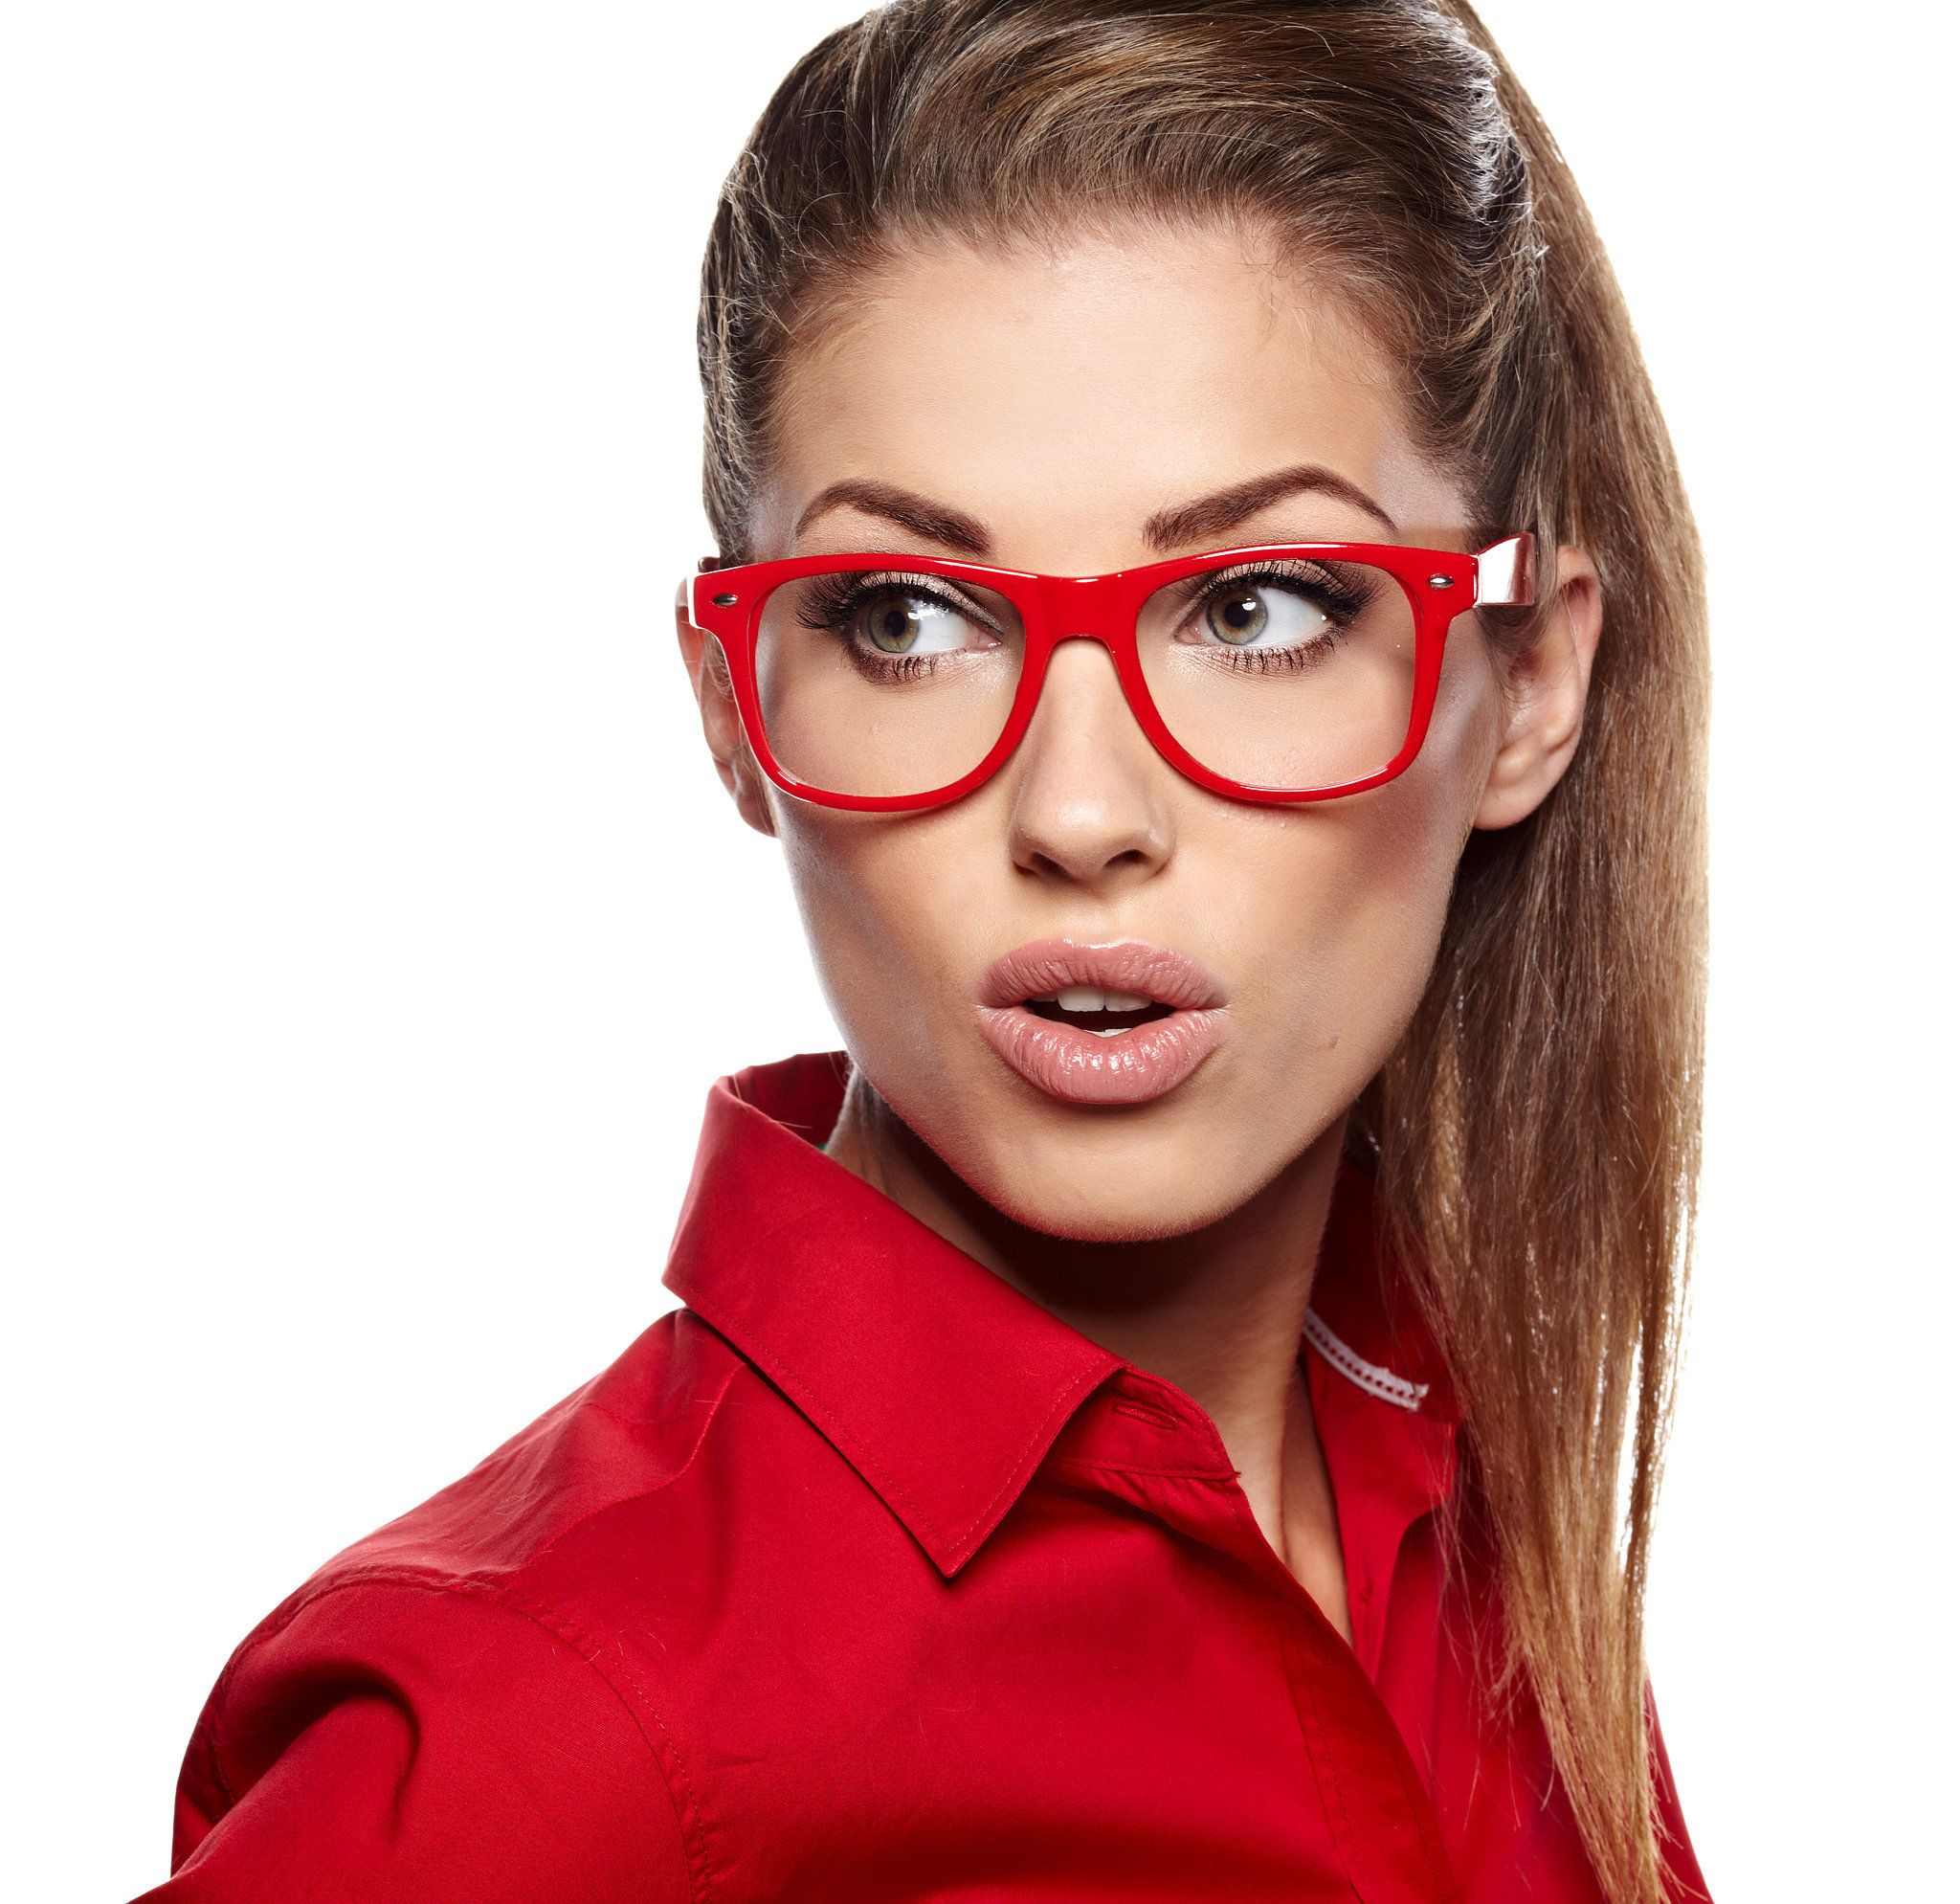 Be Professional Red Eyeglasses Red Eyeglass Frames Chic Glasses